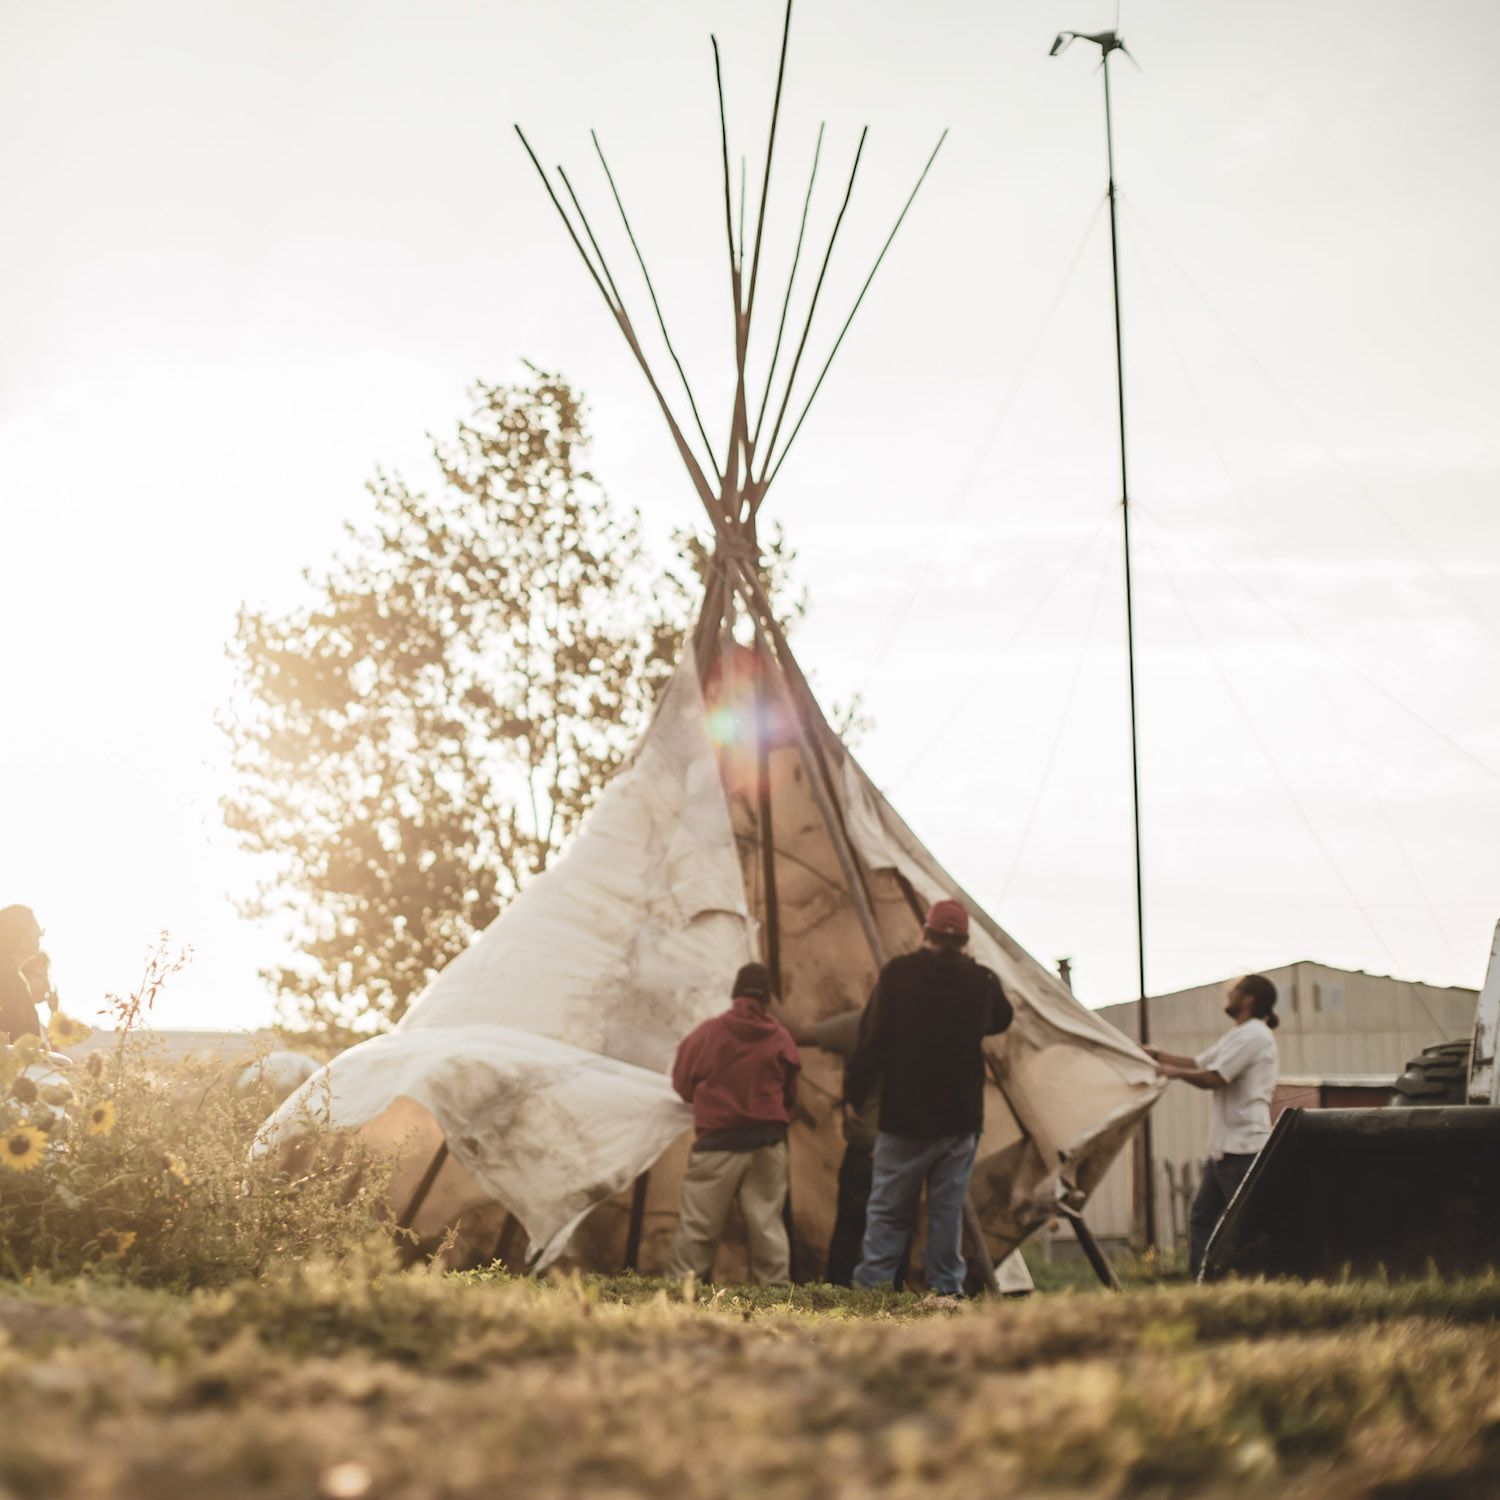 © Come To Life, Putting up the tipi honours tradition